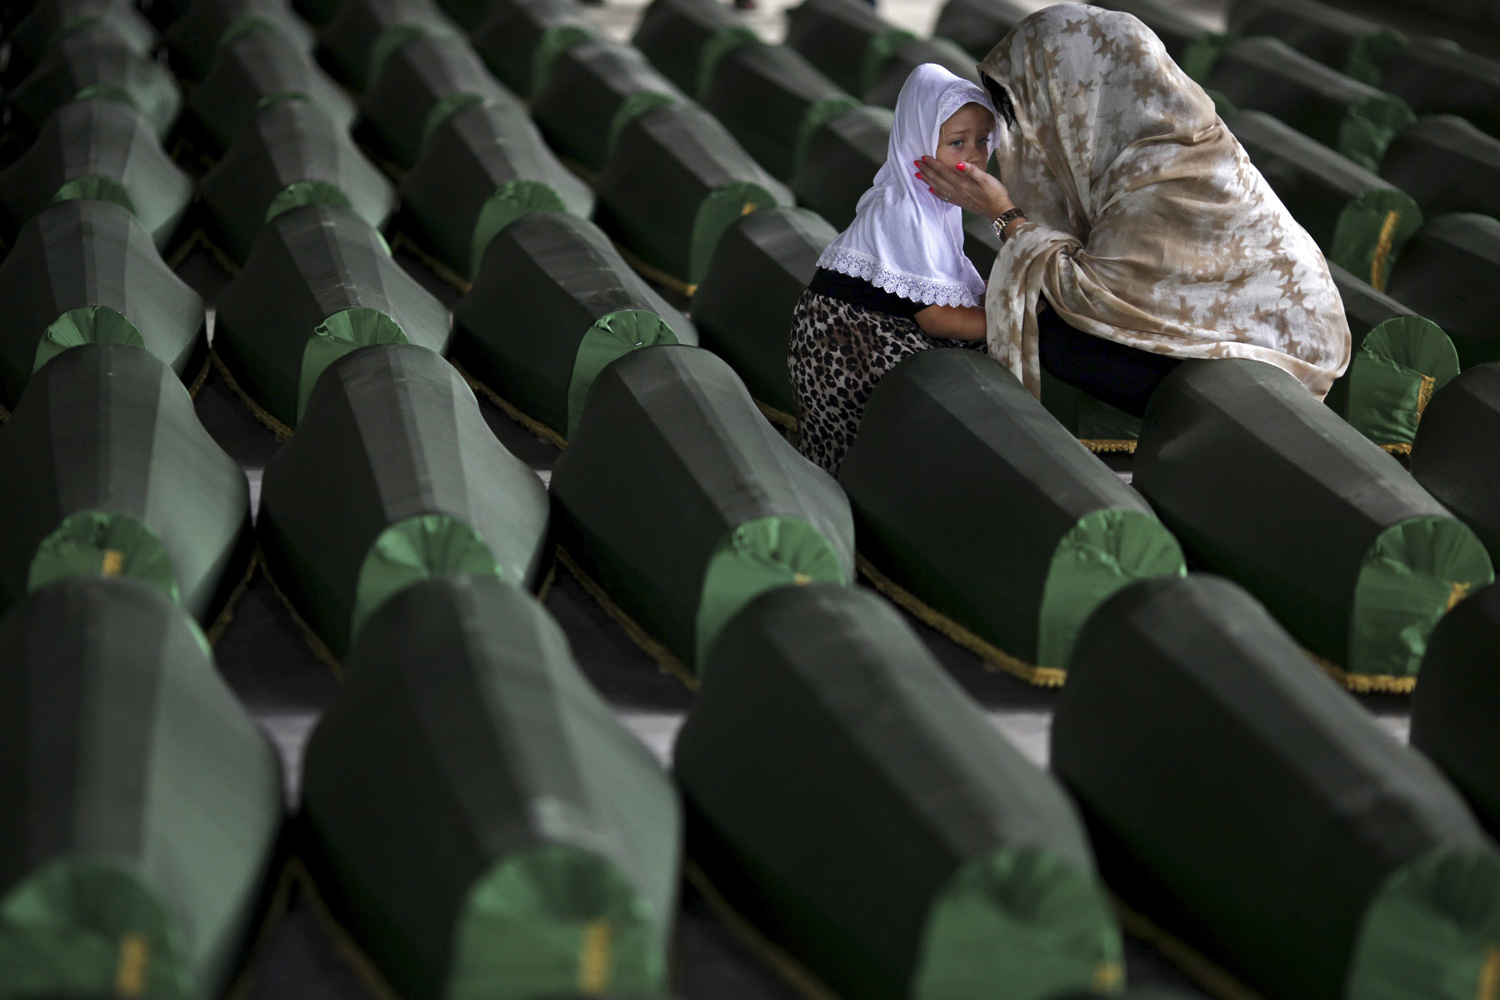 Jul. 10, 2014. A Bosnian Muslim woman and child cry near the coffin of their relative, which is one of the 175 coffins of newly identified victims from the 1995 Srebrenica massacre, in the Potocari Memorial Center, near Srebrenica.